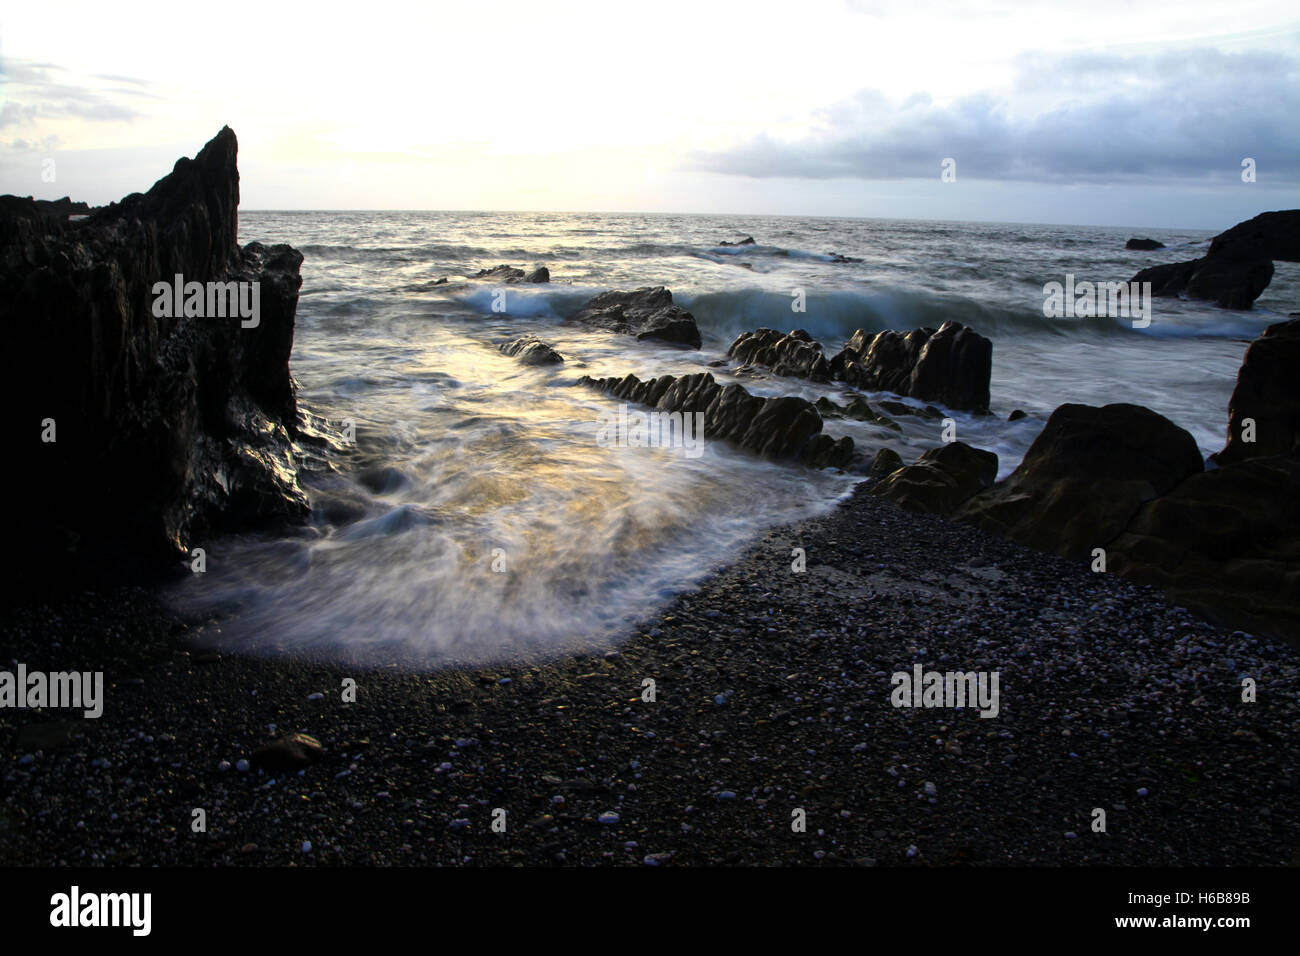 Gentle waves lap against the rocky shore at Ilfracombe as dusk approaches - Stock Image